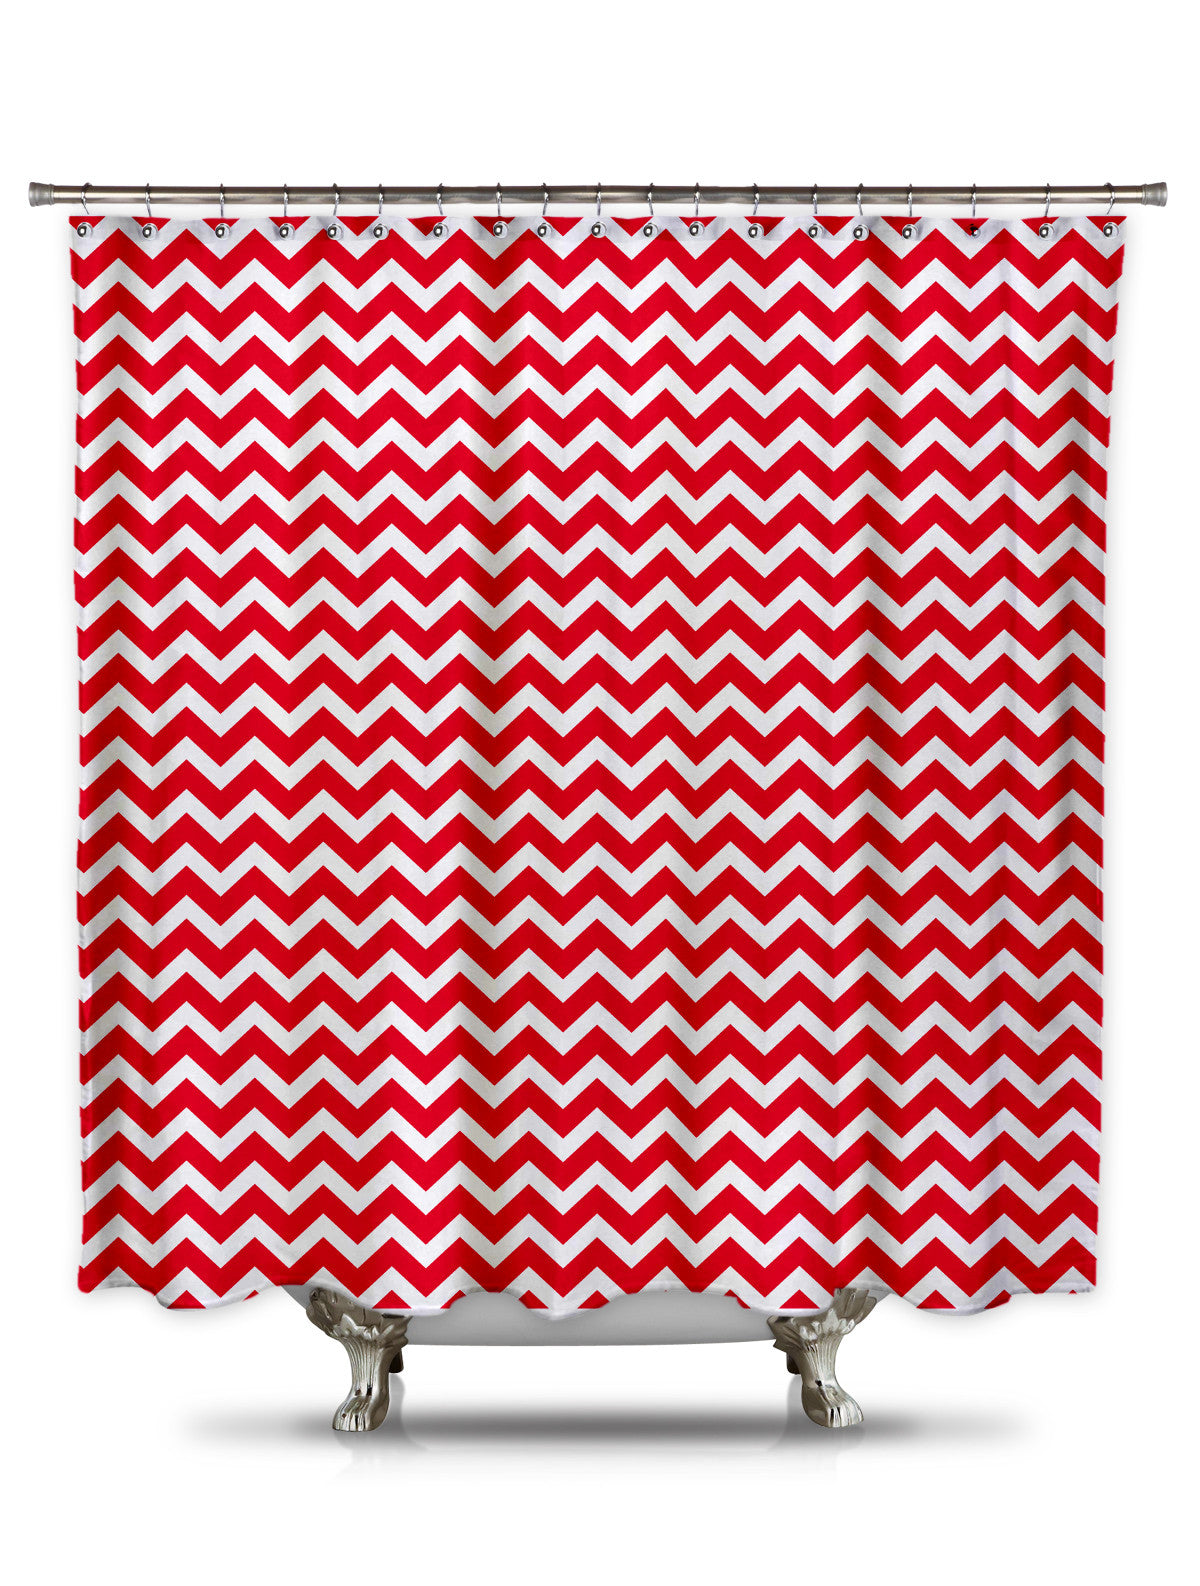 Red And White Chevron Fabric Shower Curtain Christmas Shower